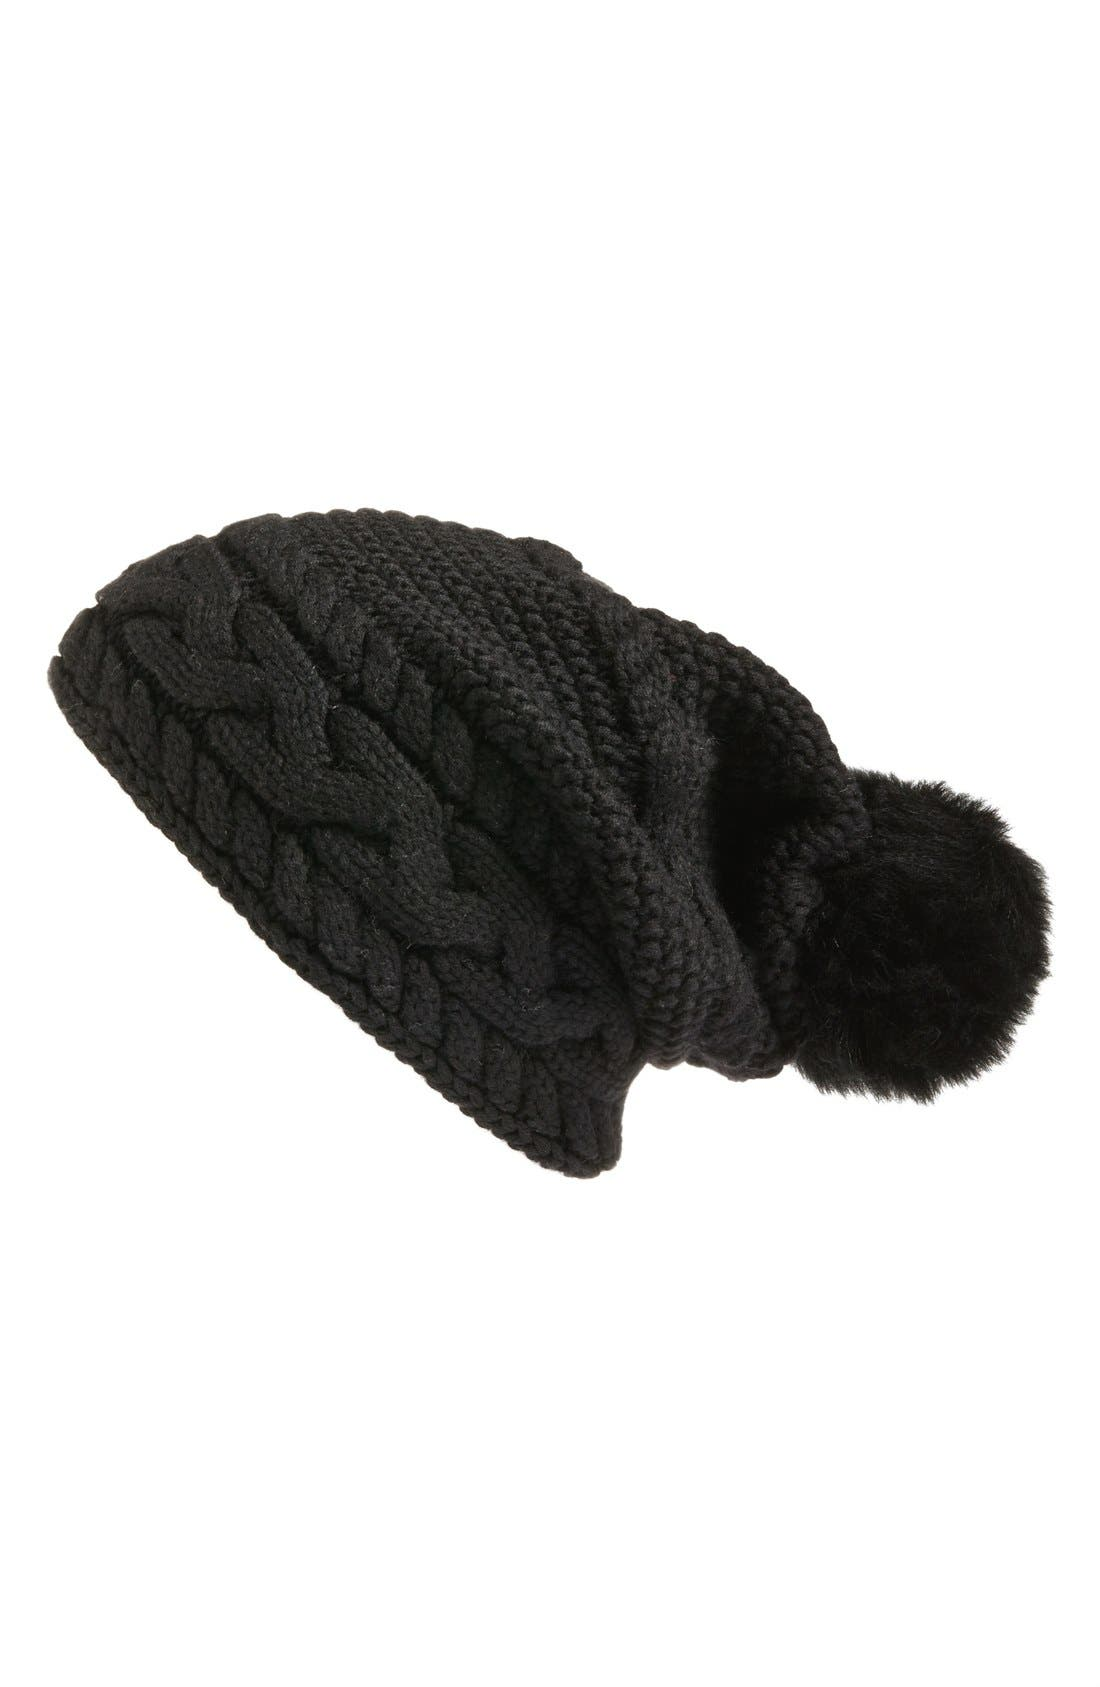 Alternate Image 1 Selected - UGG® Cable Knit Genuine Shearling Pom Beanie